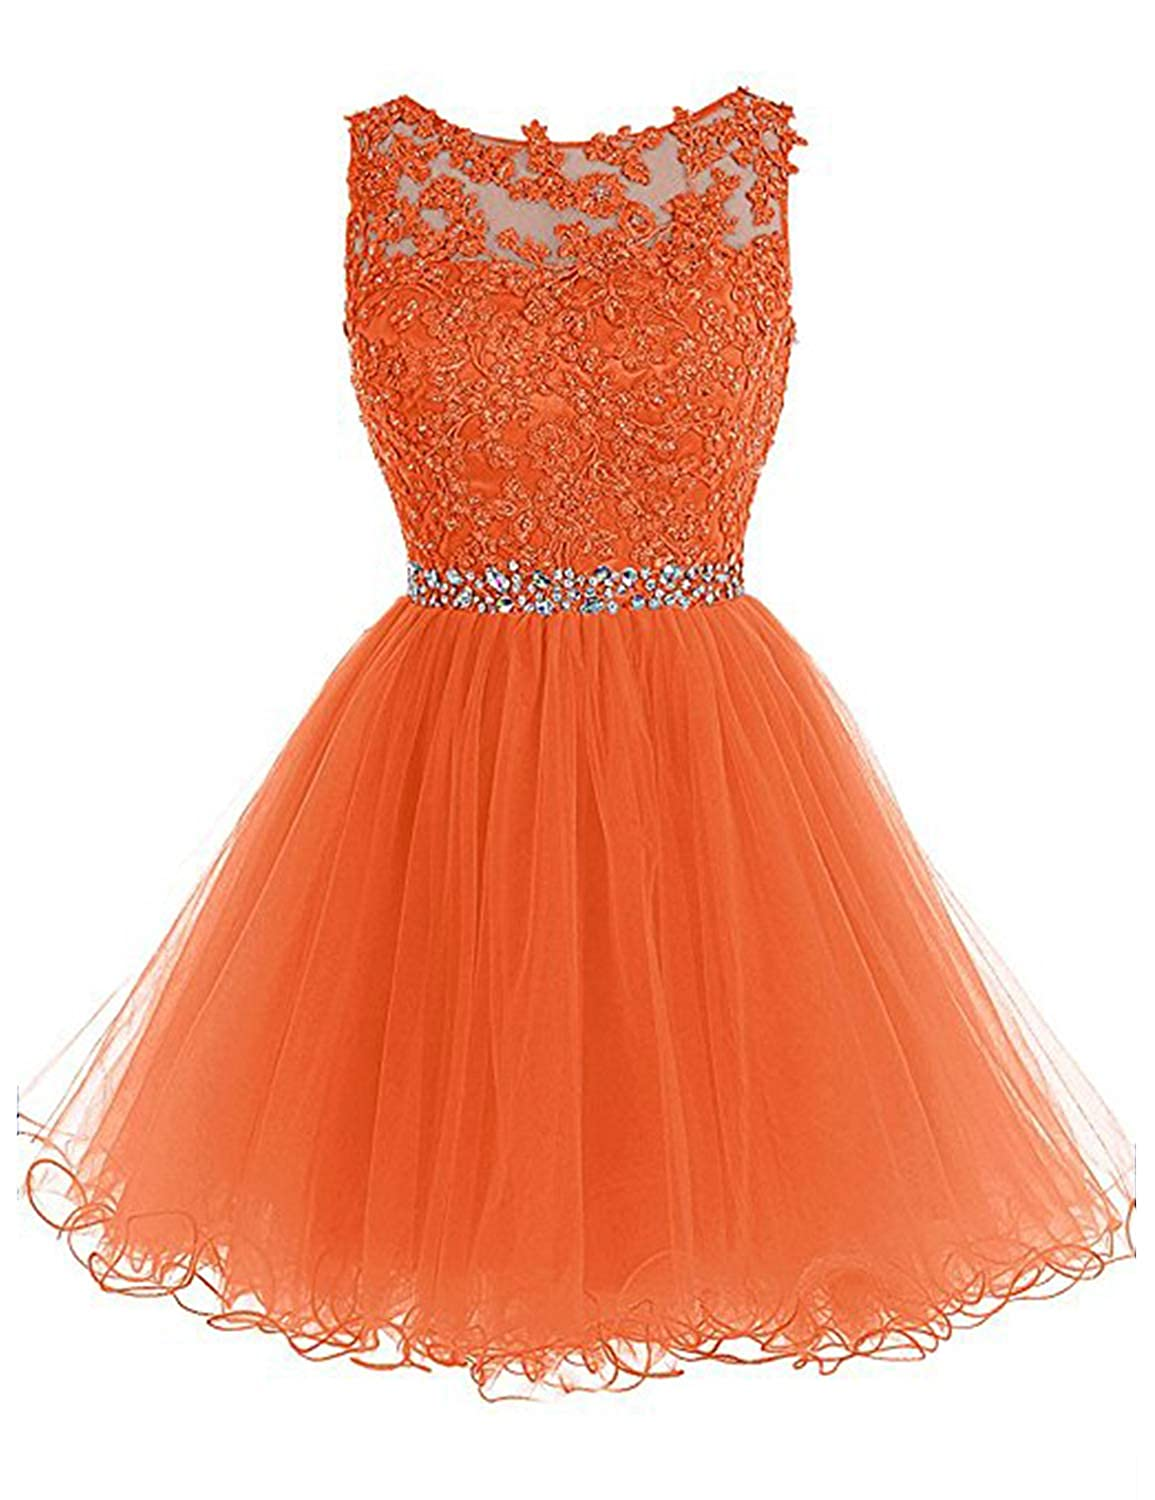 0 orange Vimans Women's Short Tulle Homecoming Dresses 2018 Knee Length Lace Prom Gowns Dress448